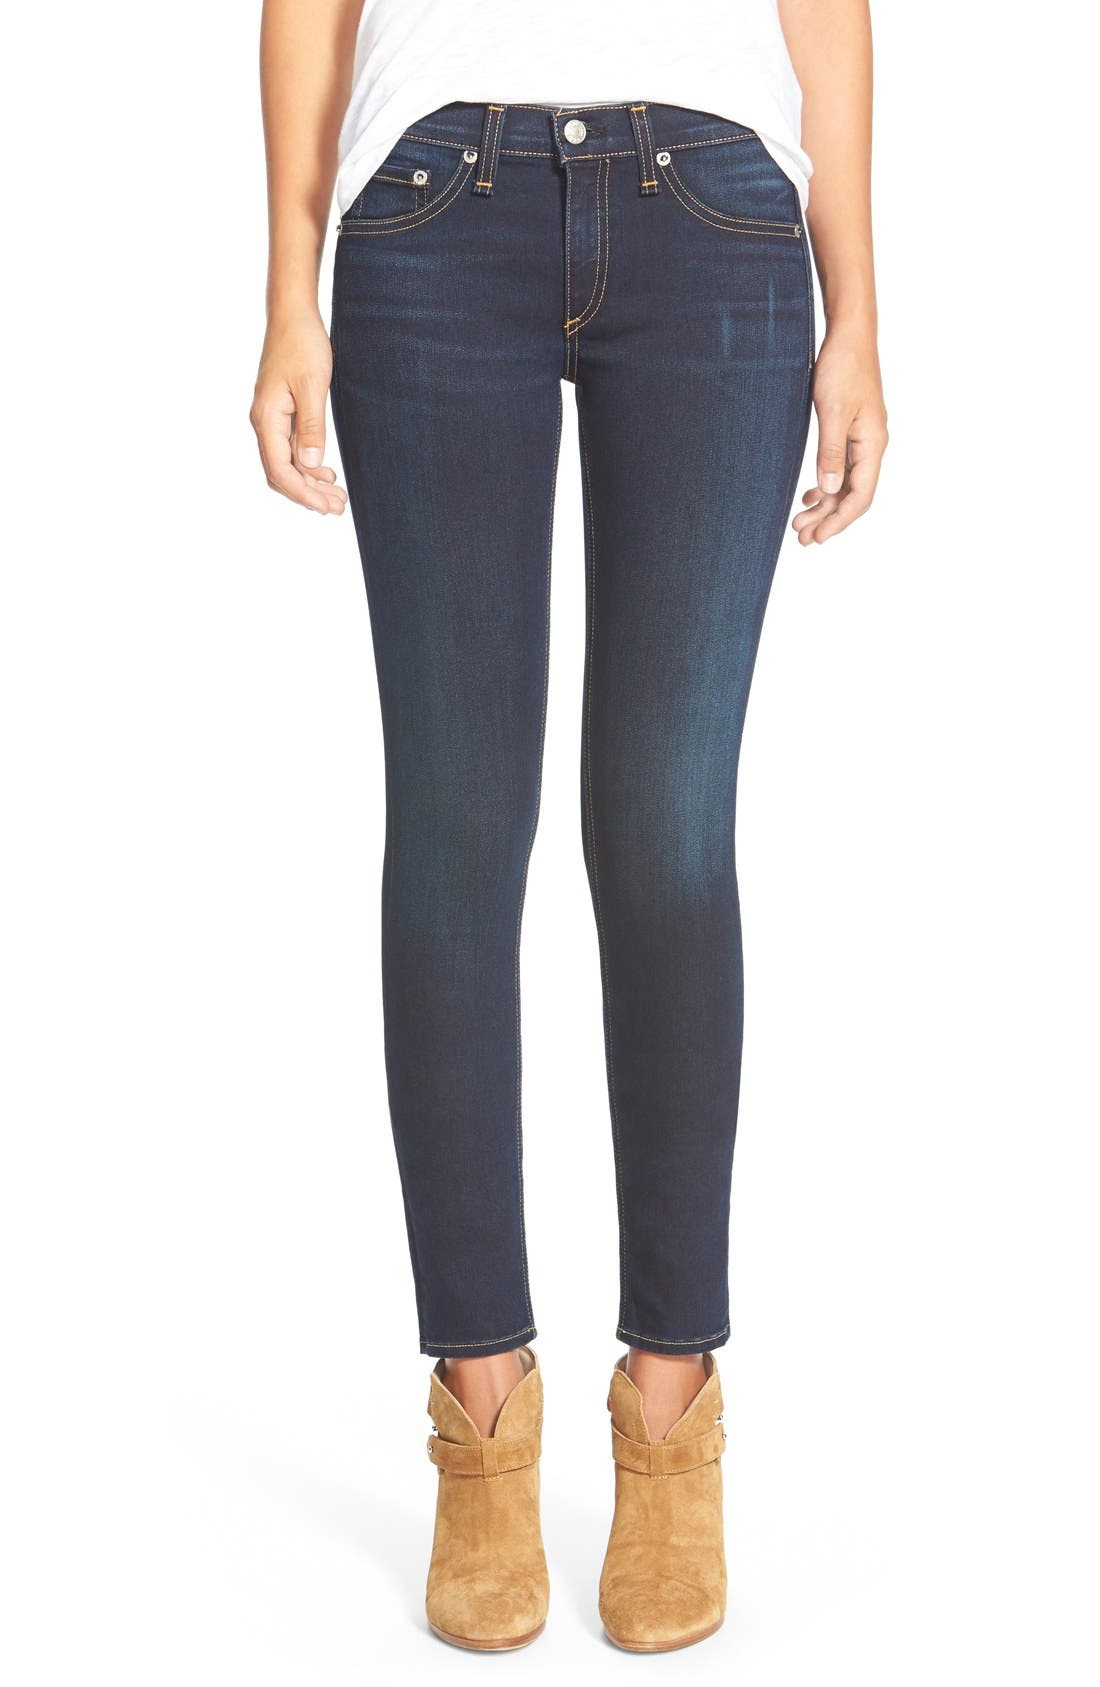 Rag & Bone/jean Woman Marilyn Distressed Boyfriend Jeans Light Denim Size 32 Rag & Bone Clean And Classic Clearance 2018 Best Cheap Online Clearance Pay With Visa cwXCKBsXK